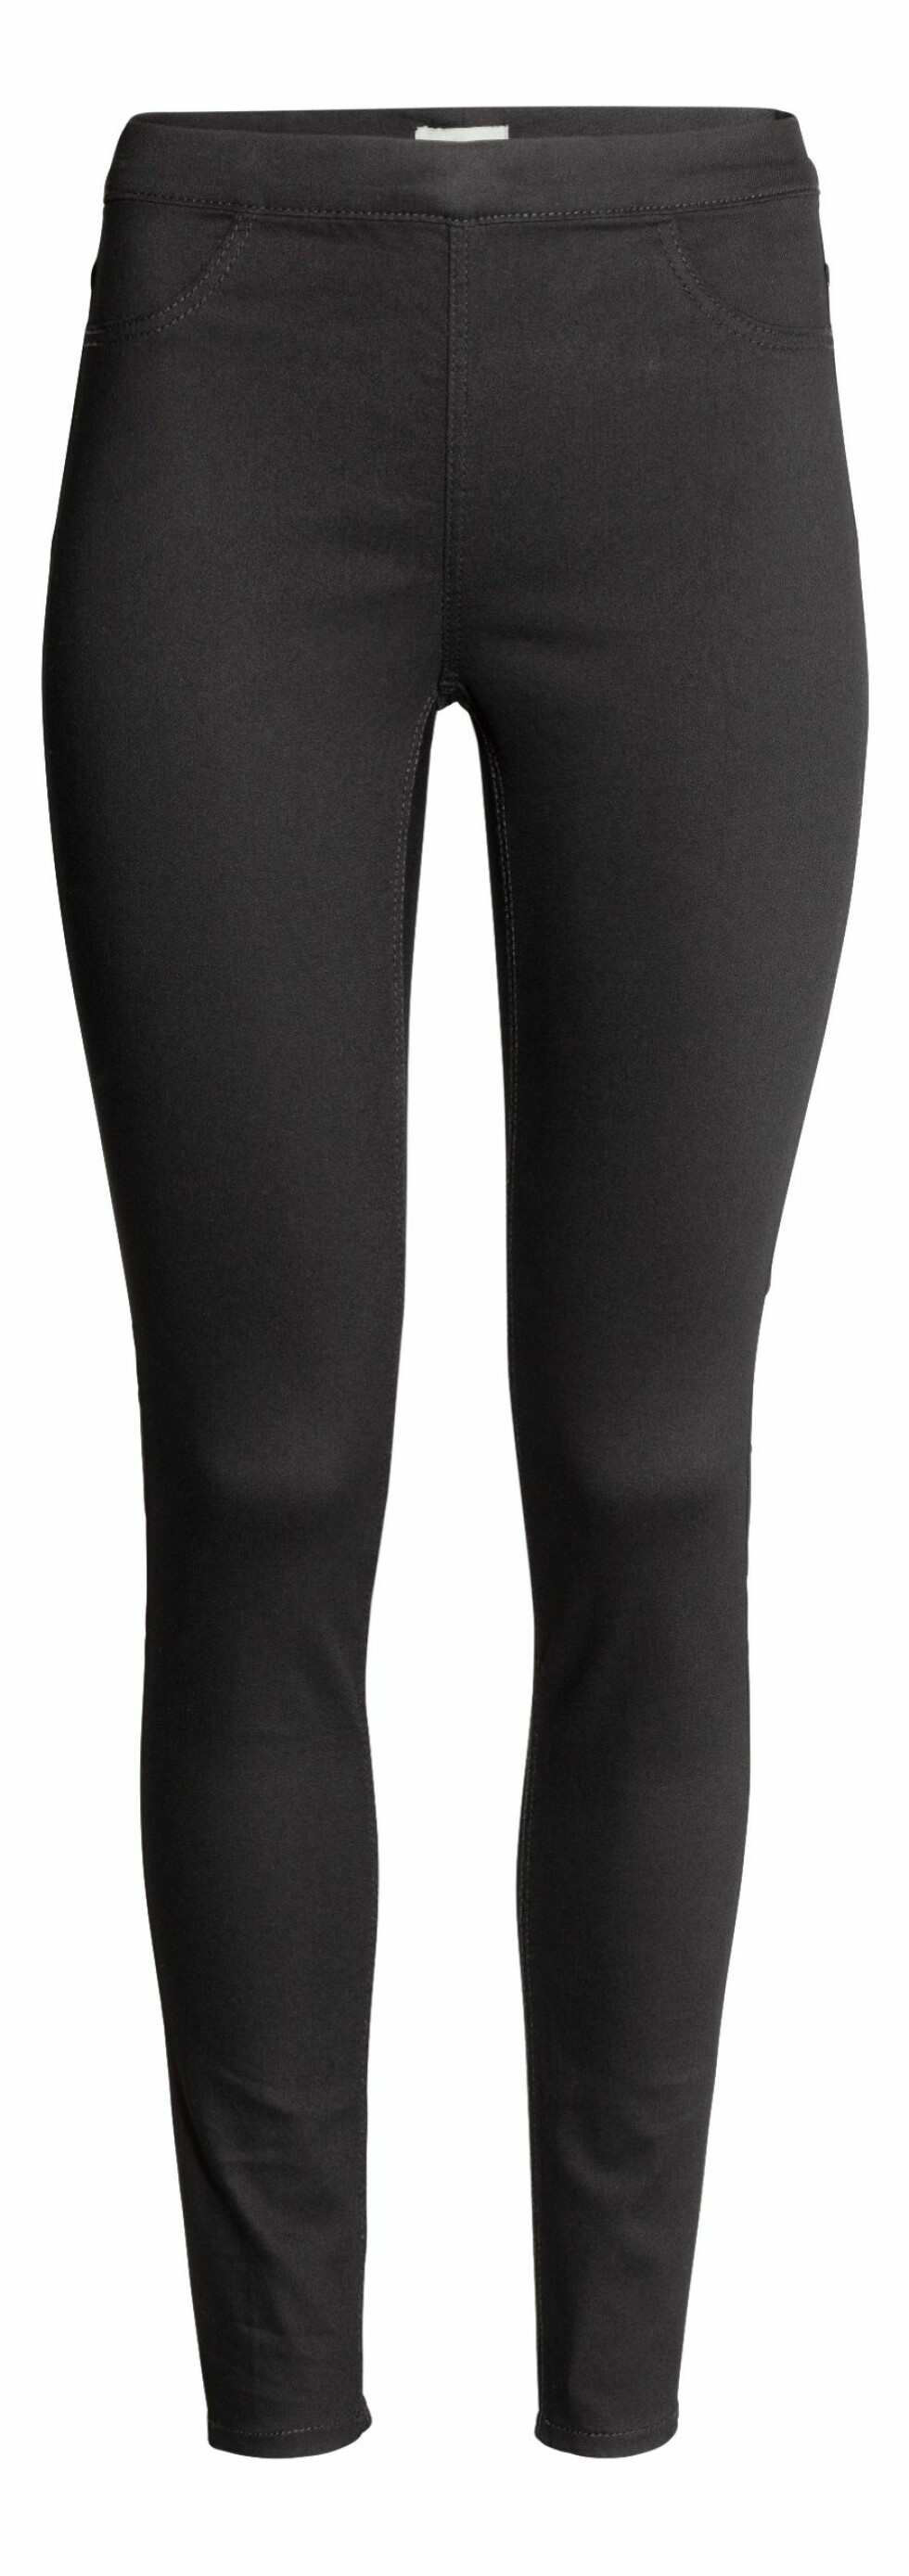 Treggings, kr 79,90